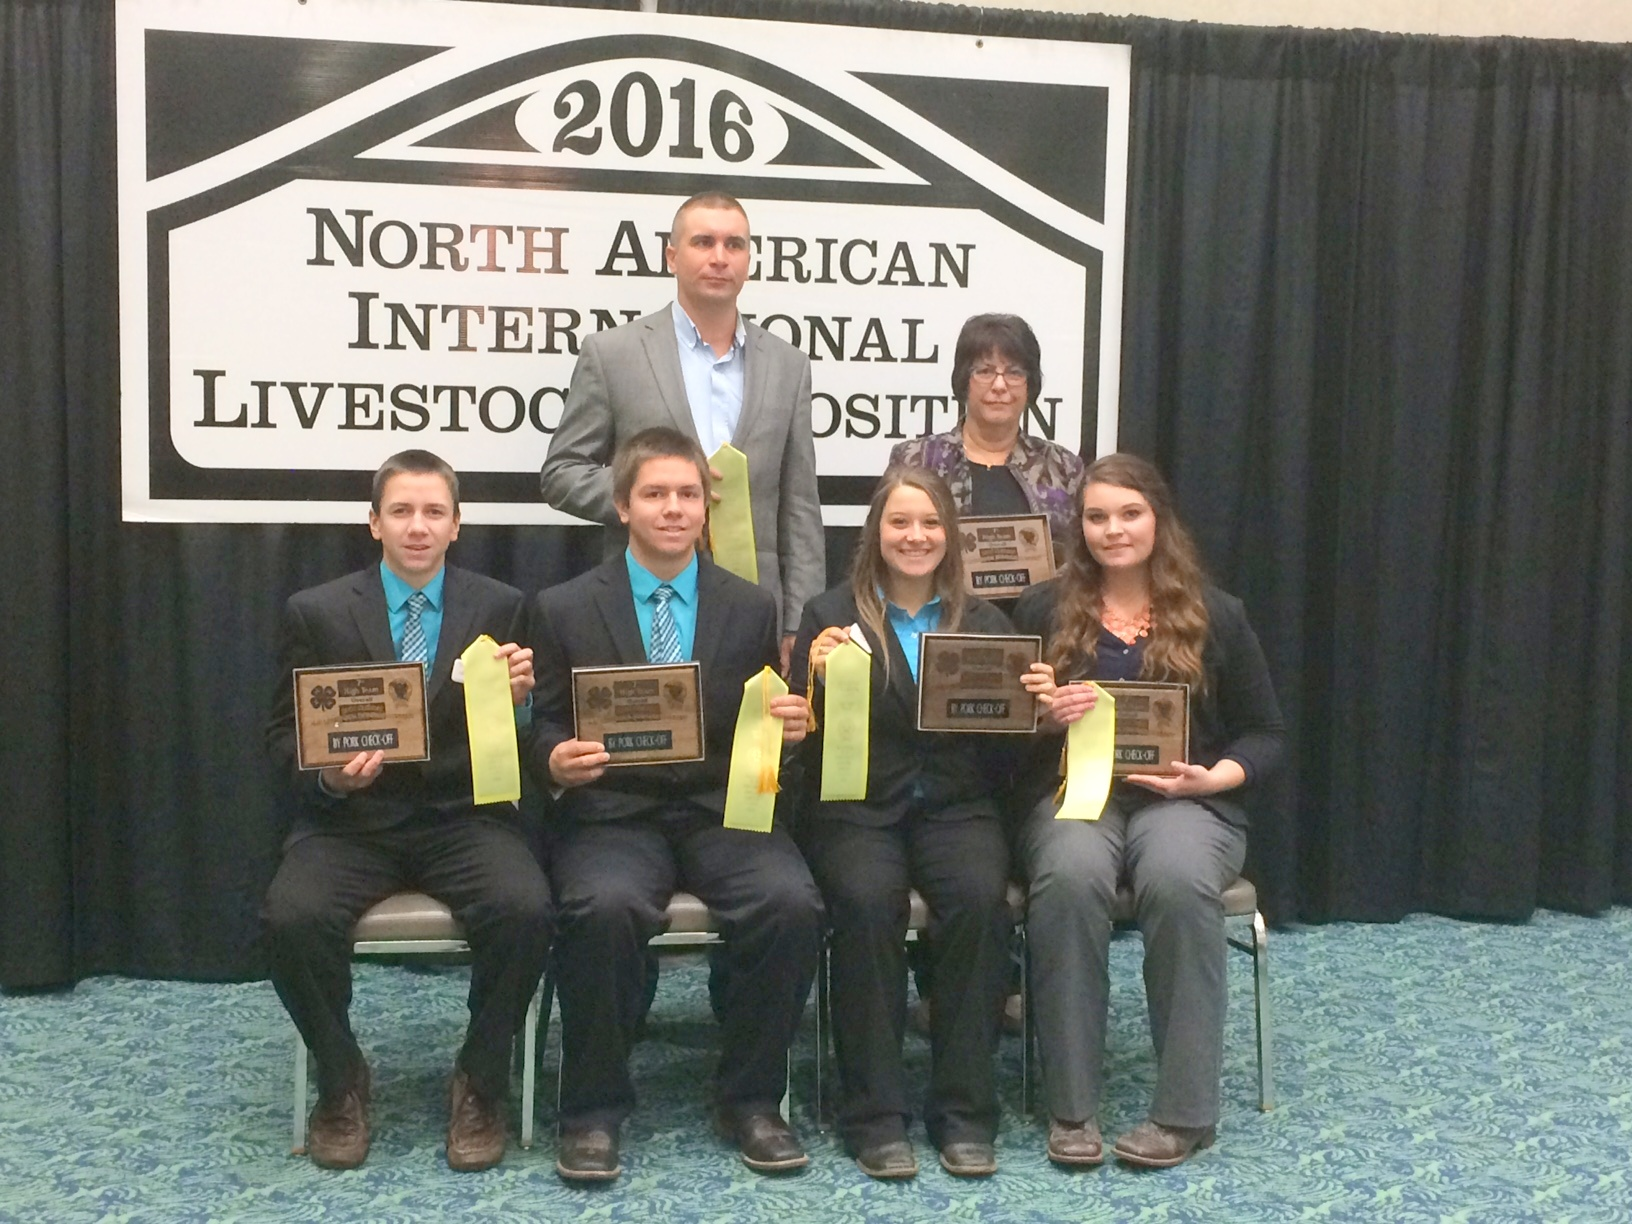 Morton County's team places seventh overall in the National 4-H Livestock Judging Contest in Louisville, Ky. Pictured are (from left, front row) team members Stetson Ellingson, Jameson Ellingson, Kelsie Jo Schaff and Sara Jochim and (back row) coaches Luke Keller and Jackie Buckley. (NDSU photo)